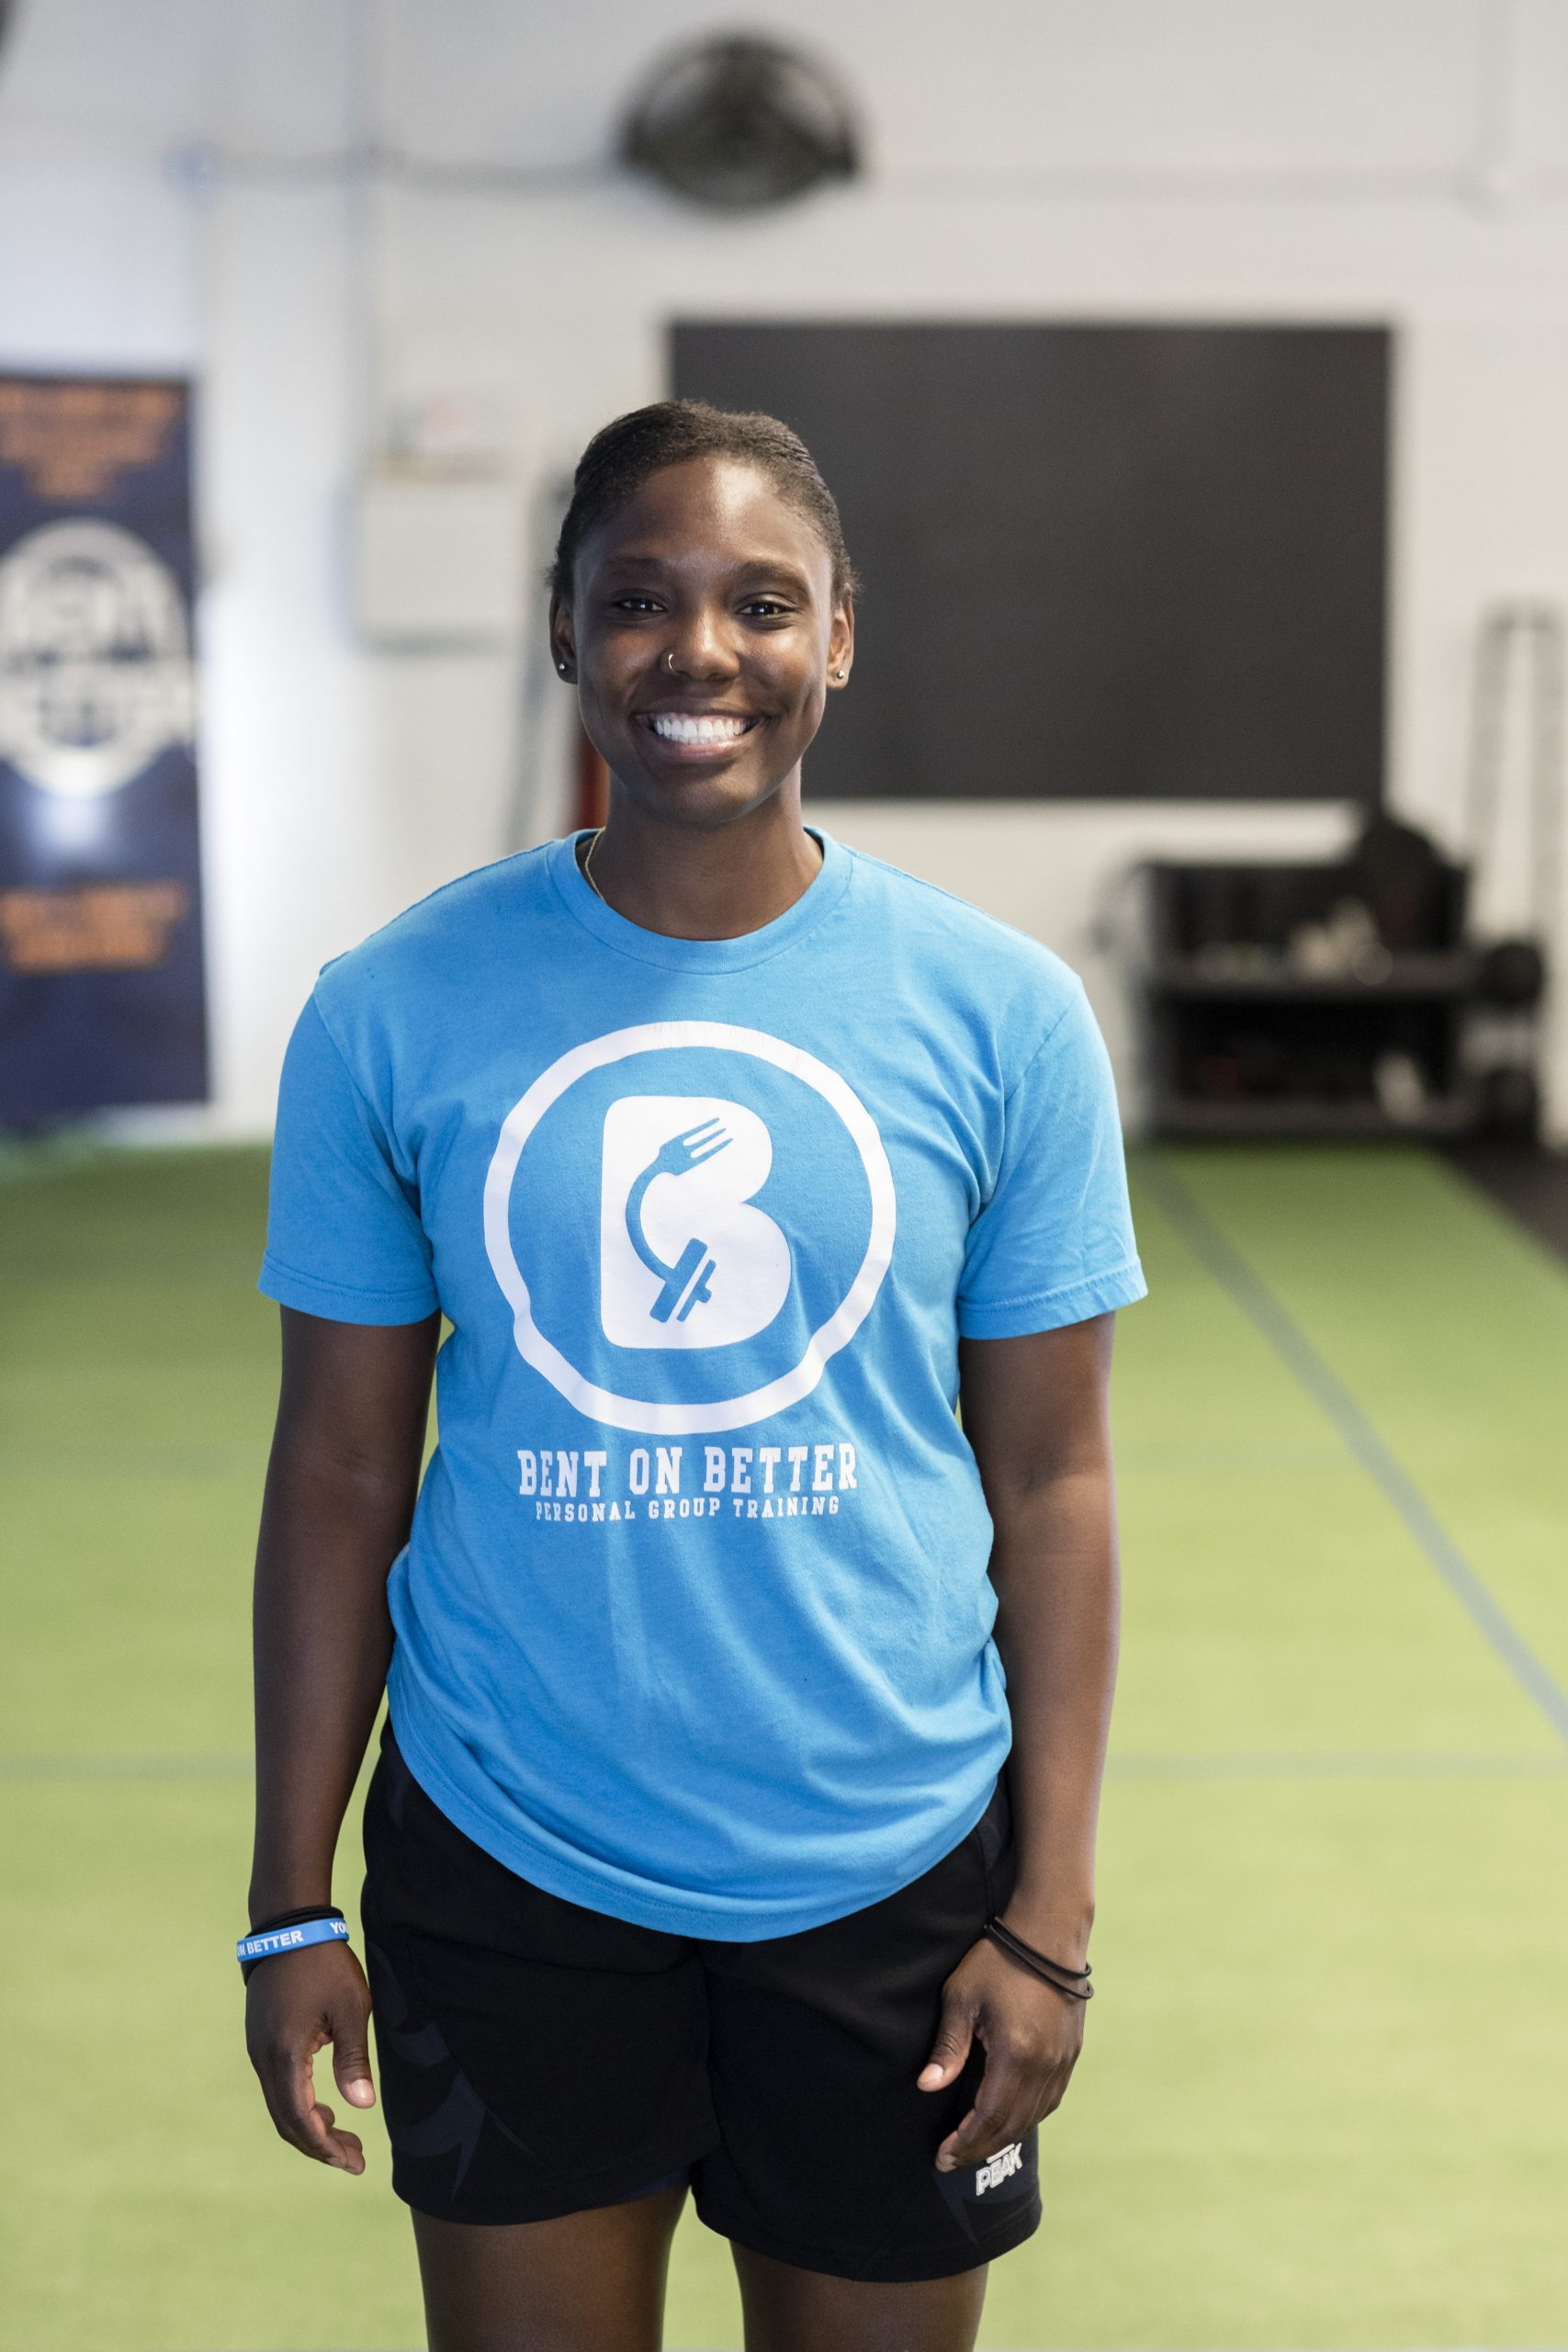 gyms in west chester- Bent On Better - personal trainers- Alysha Womack